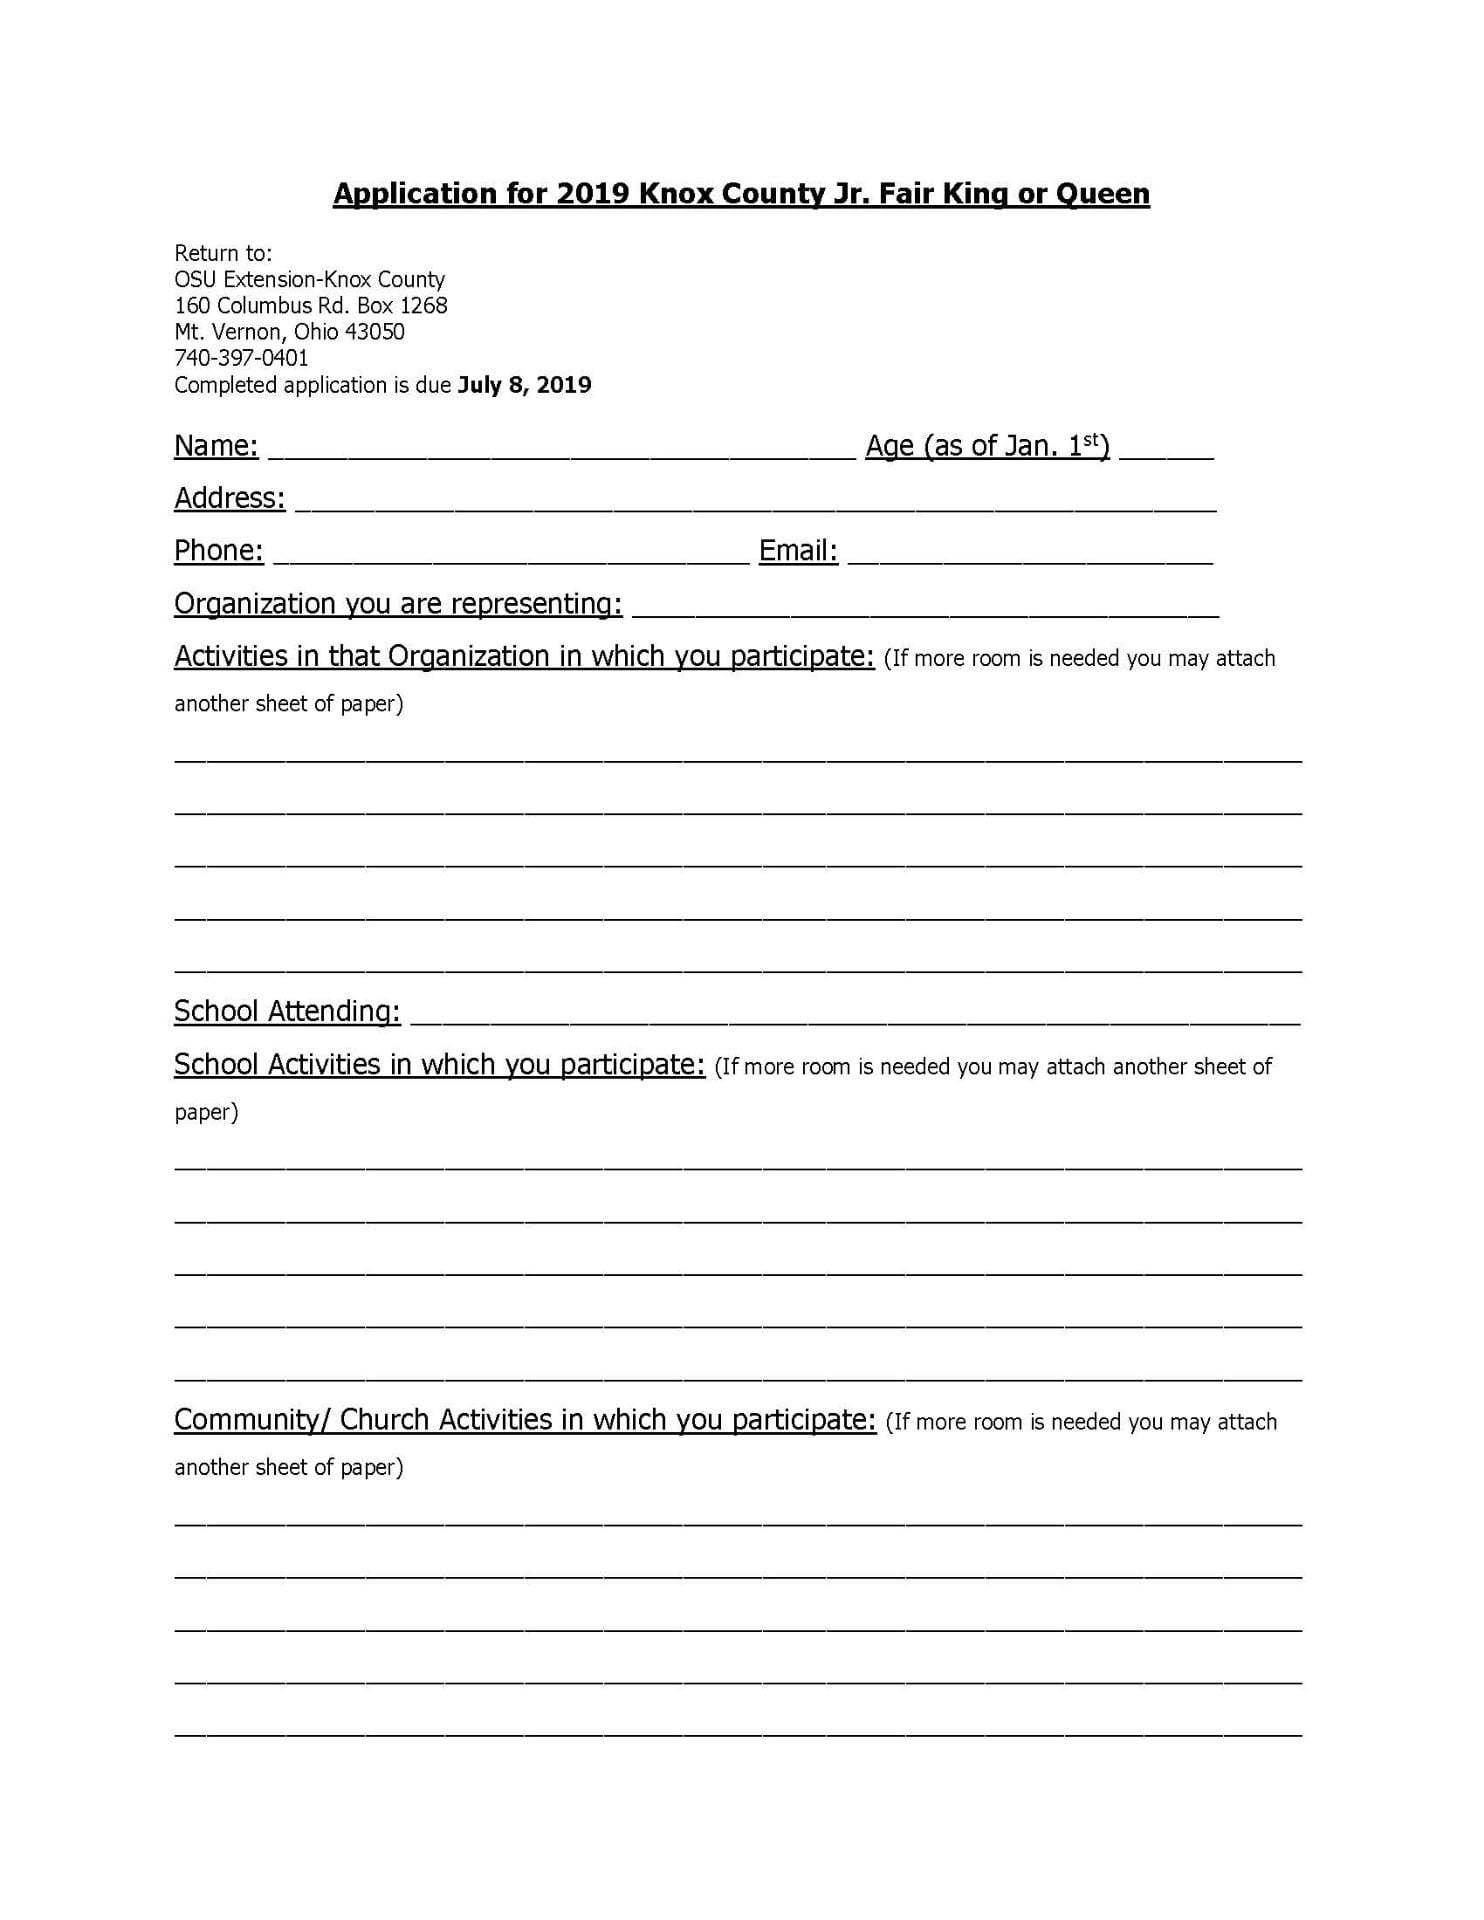 2019 Knox County Junior Fair King & Queen Application | Knox ... Dairy Queen Application Form on baskin-robbins application form, ihop application form, shell gas station application form, chick-fil-a application form, mcdonald's crew application form, safeway application form, the cheesecake factory application form, sizzler application form, mcdonalds job application printable form, taco bell application form, yogurtland application form, target application form, staples application form, cici's pizza application form, mcdonald's application for employment form, printable employment application form, hmshost application form, chipotle application form, foot locker application form, subway application form,